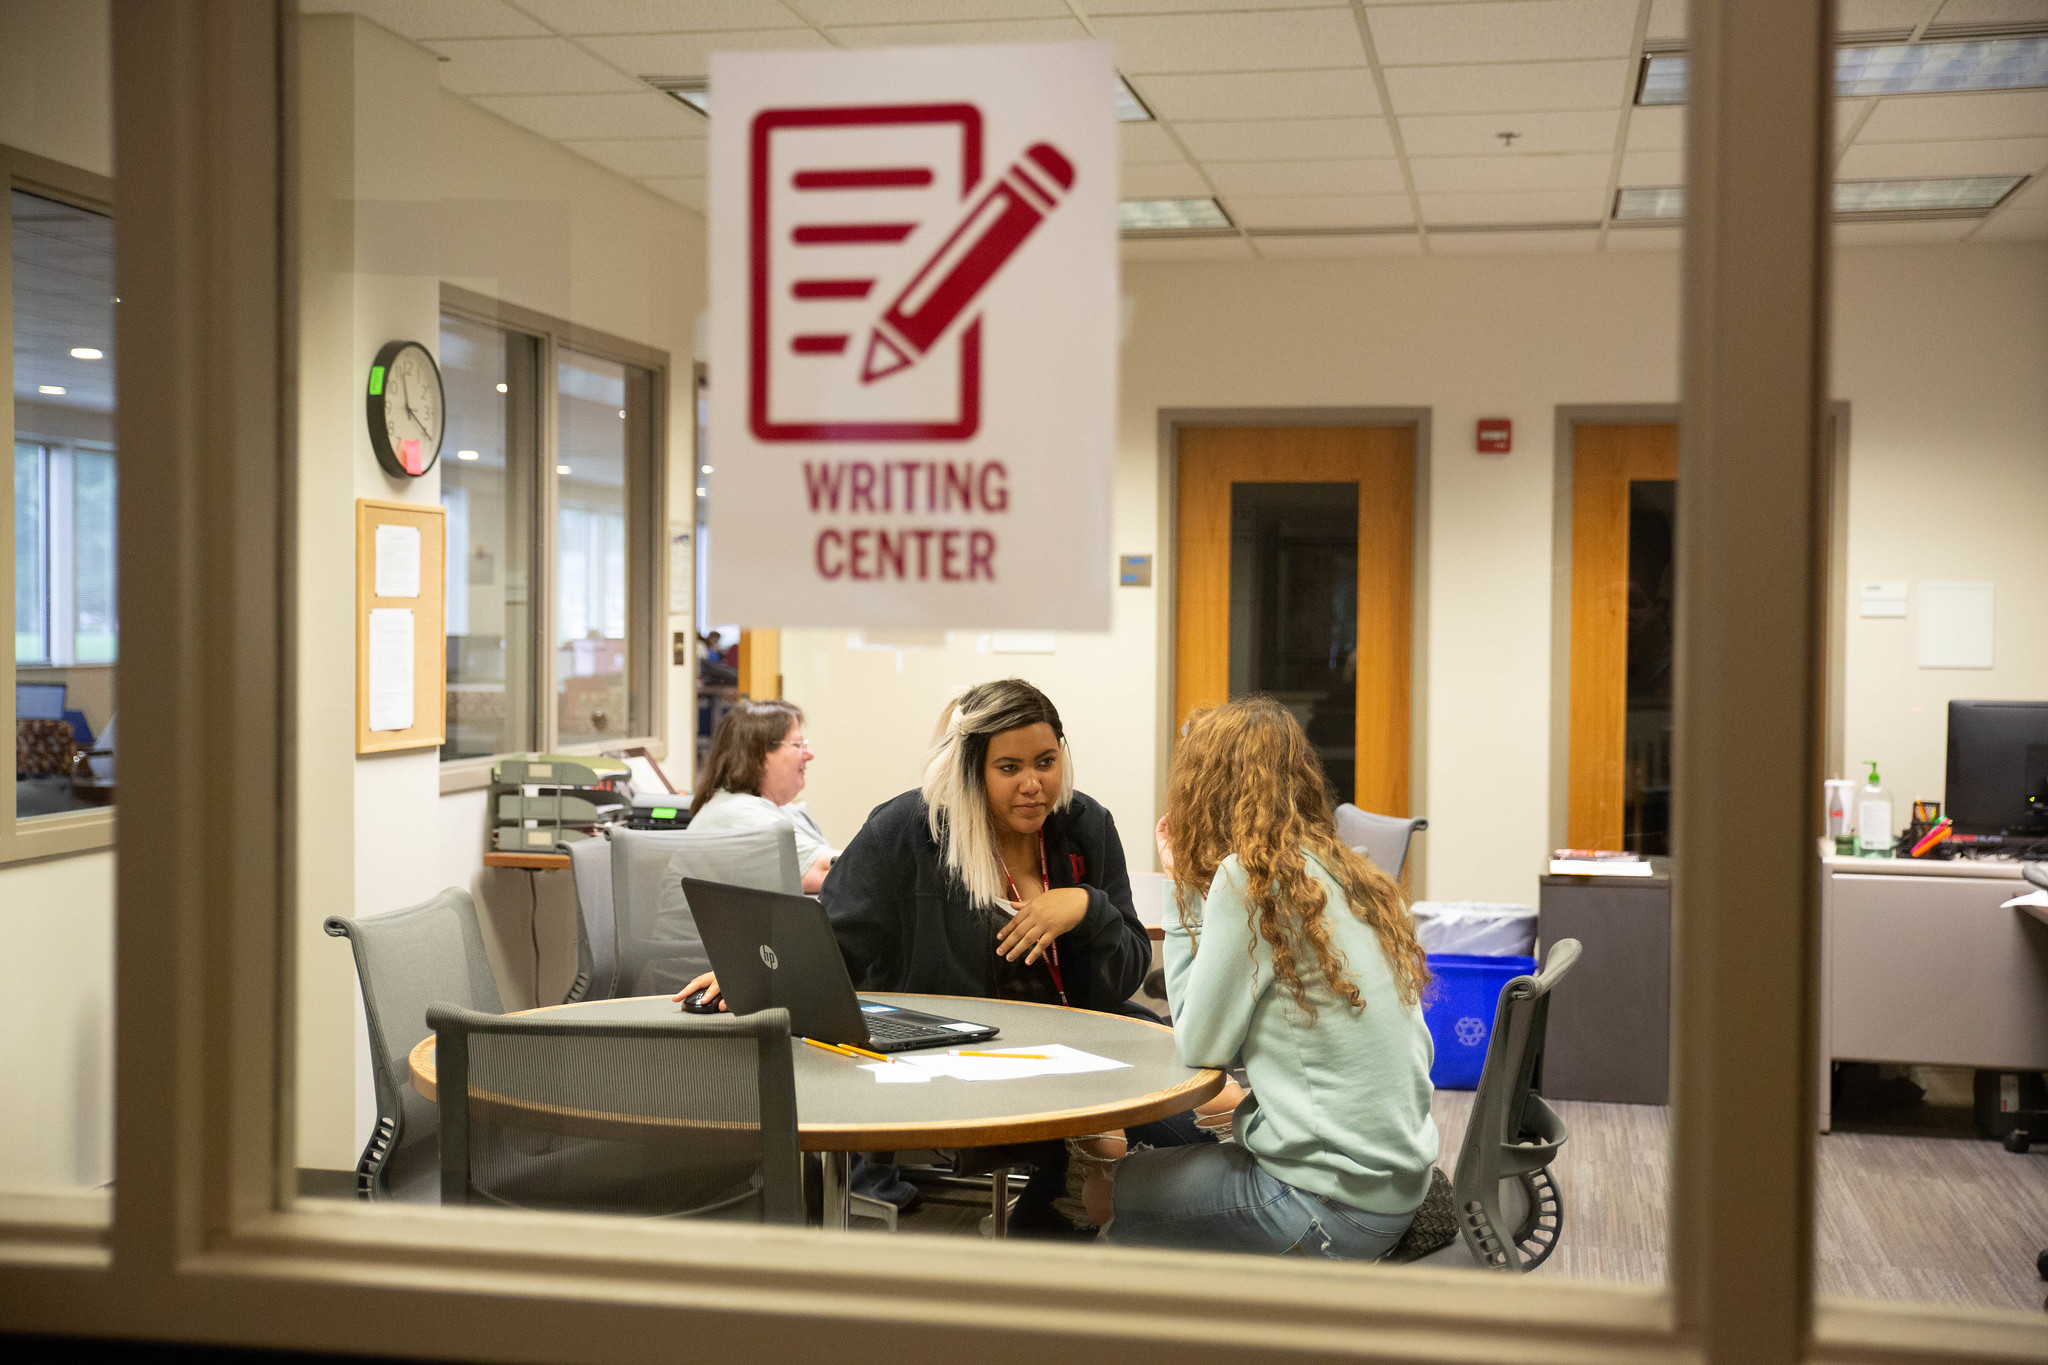 View into the Writing Center in the IU Kokomo Library